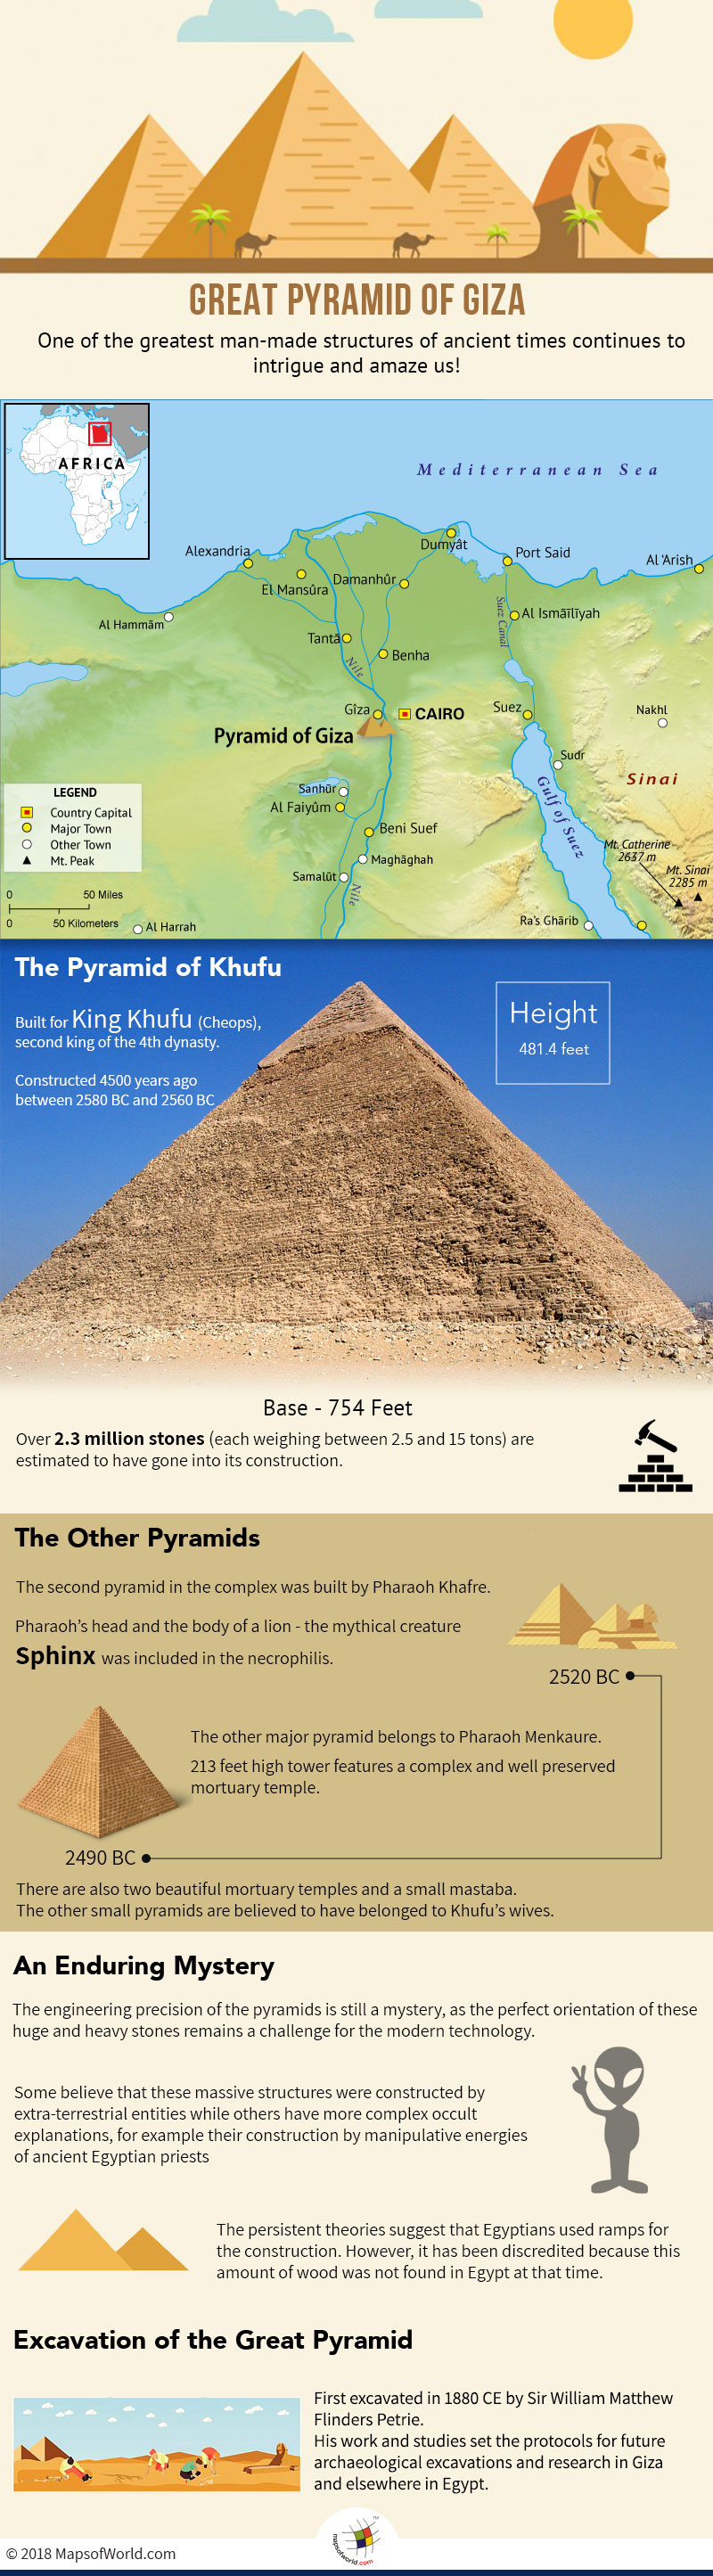 Infographic elaborating history of Great Pyramids of Giza